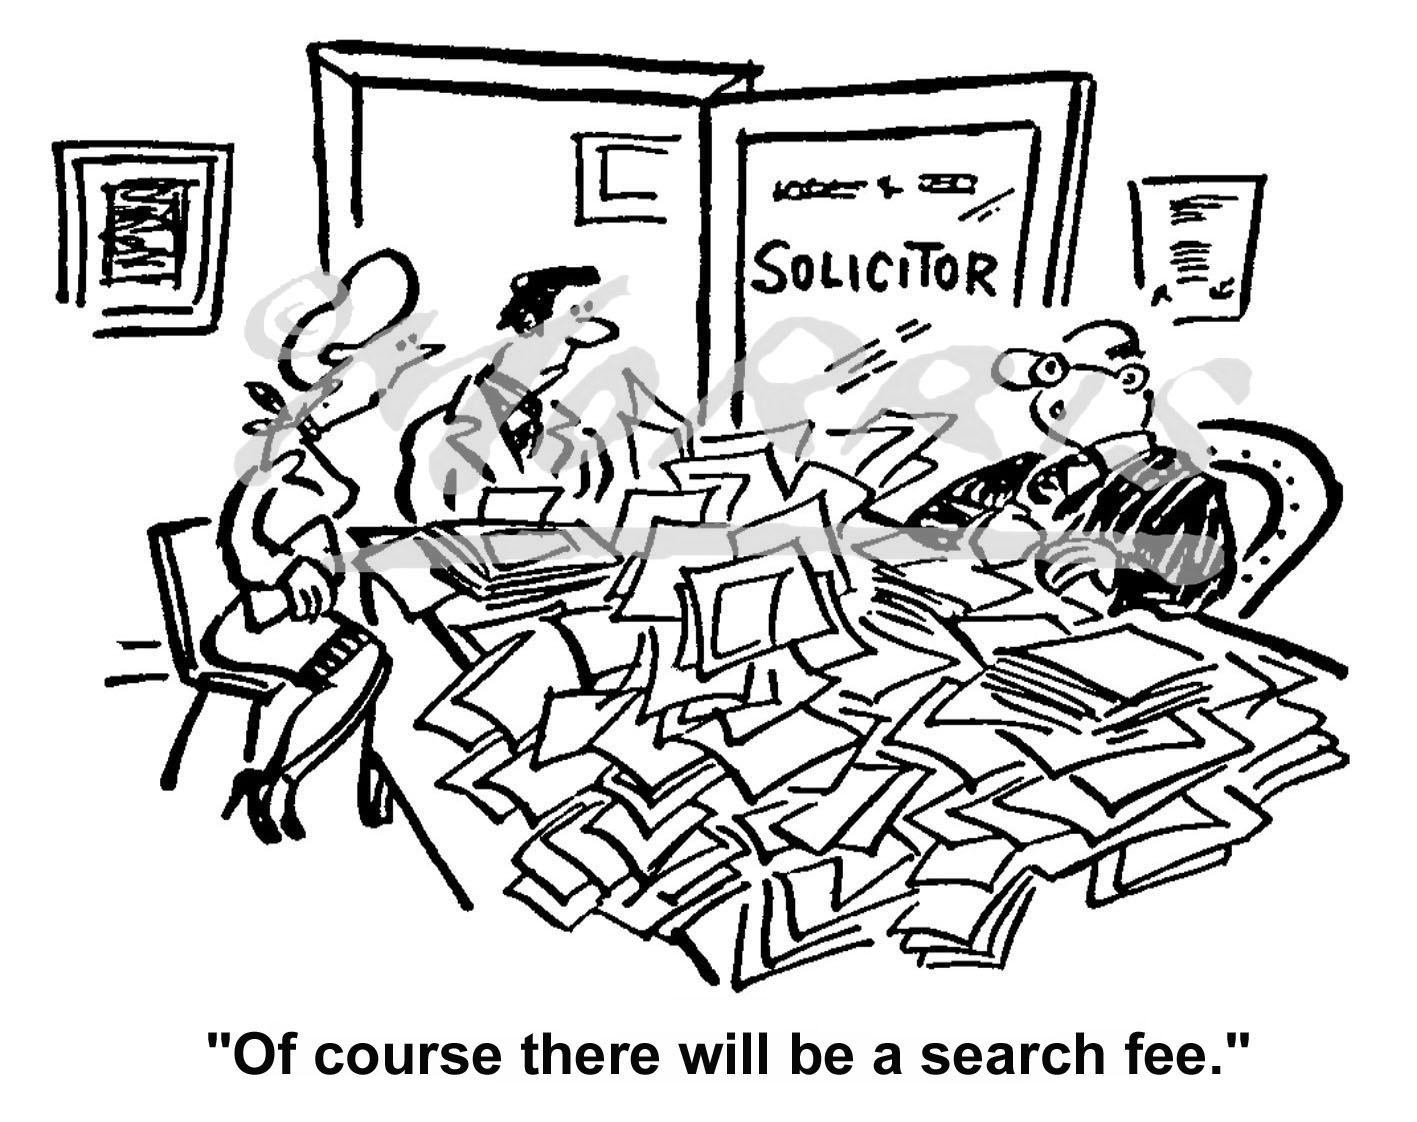 Solicitor search fee cartoon Ref:0472bw